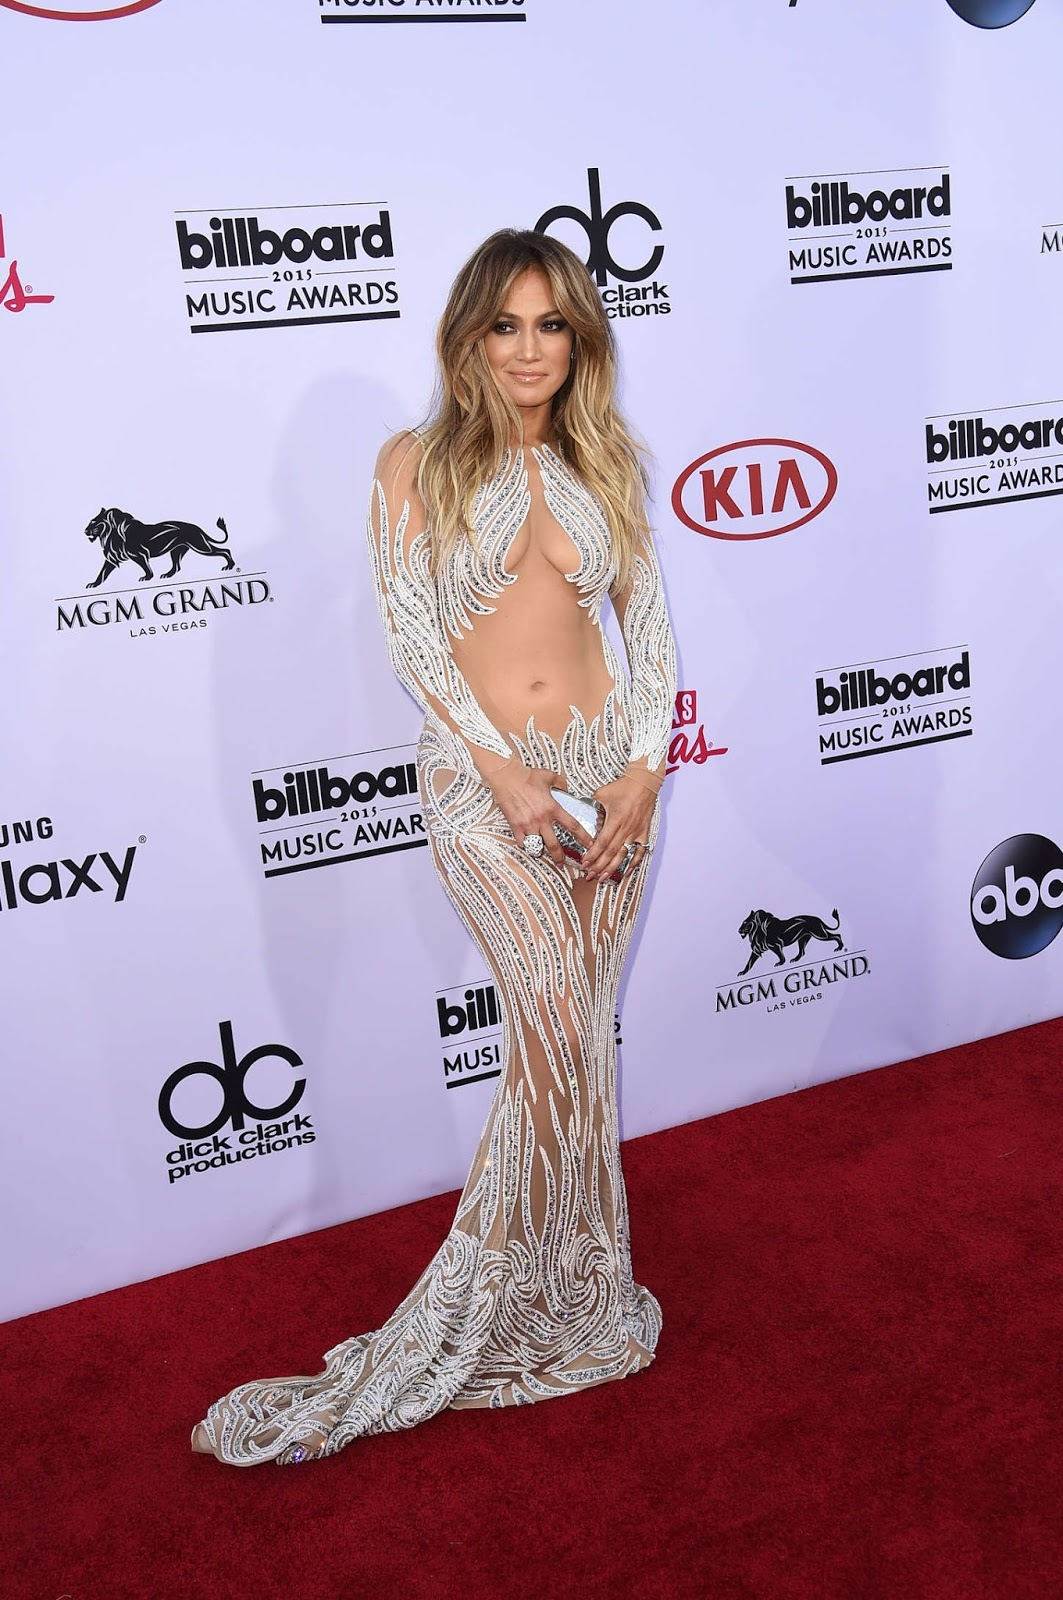 Jennifer Lopez bares it all in a sheer dress at the 2015 Billboard Music Awards